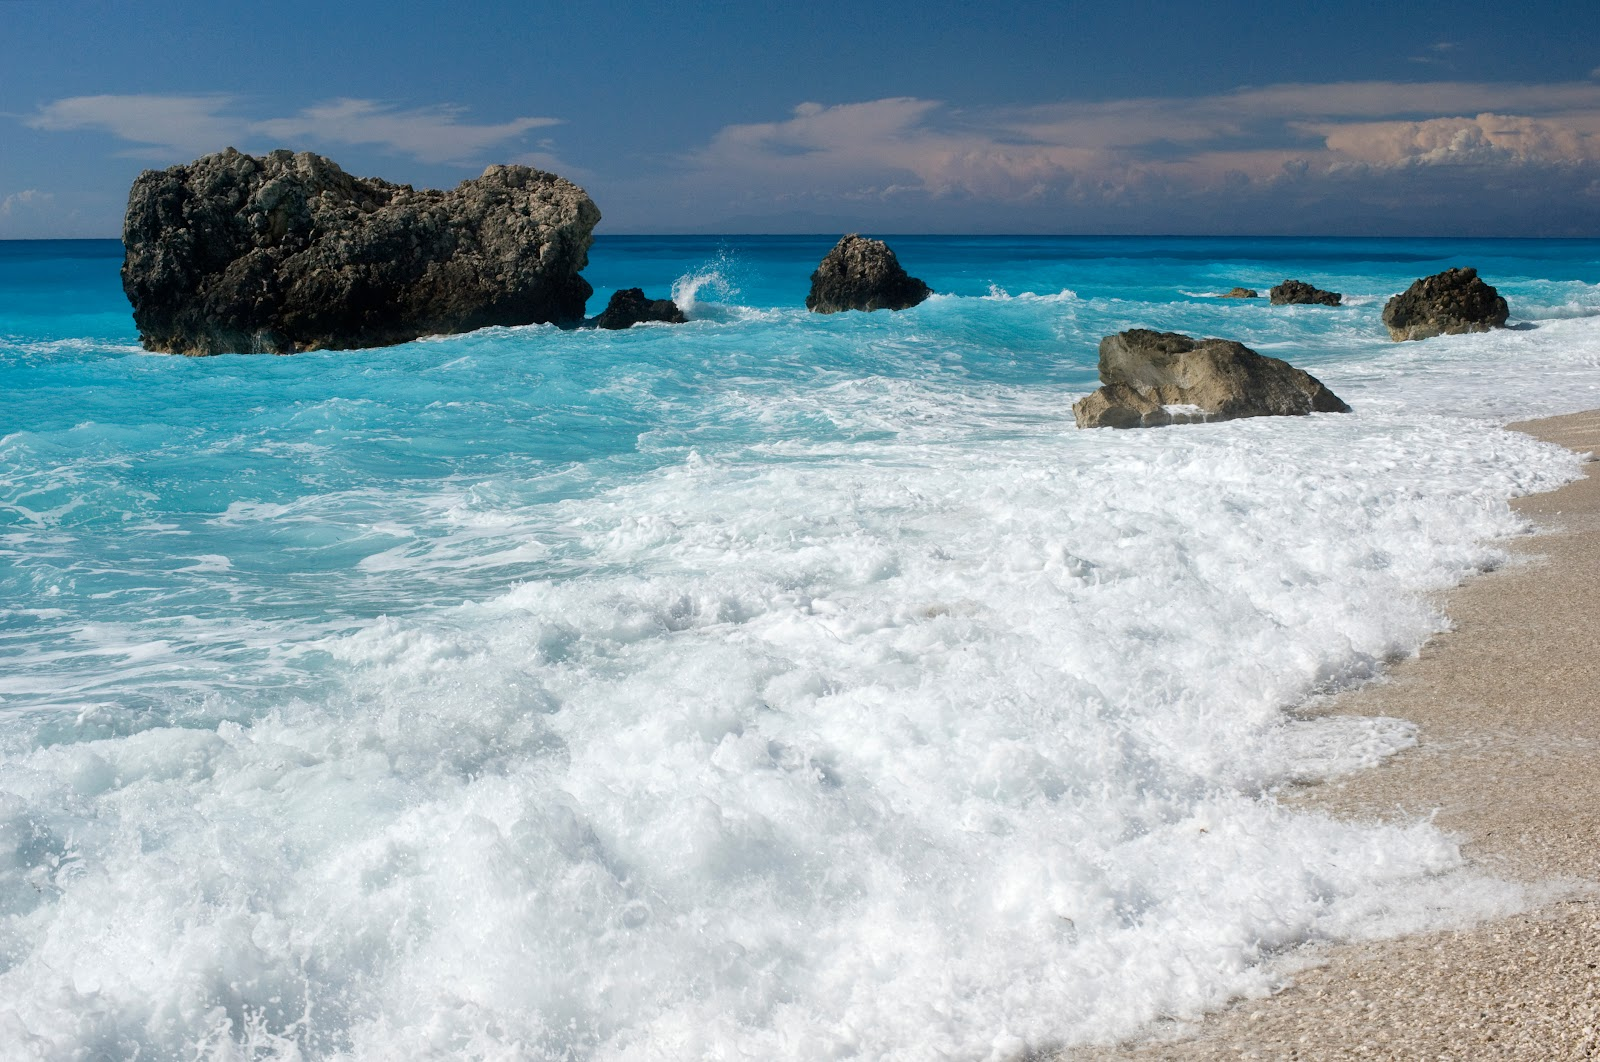 20100726_Kalamitsi_Beach_Ionian_Sea_Lefkada_island_Greece.jpg